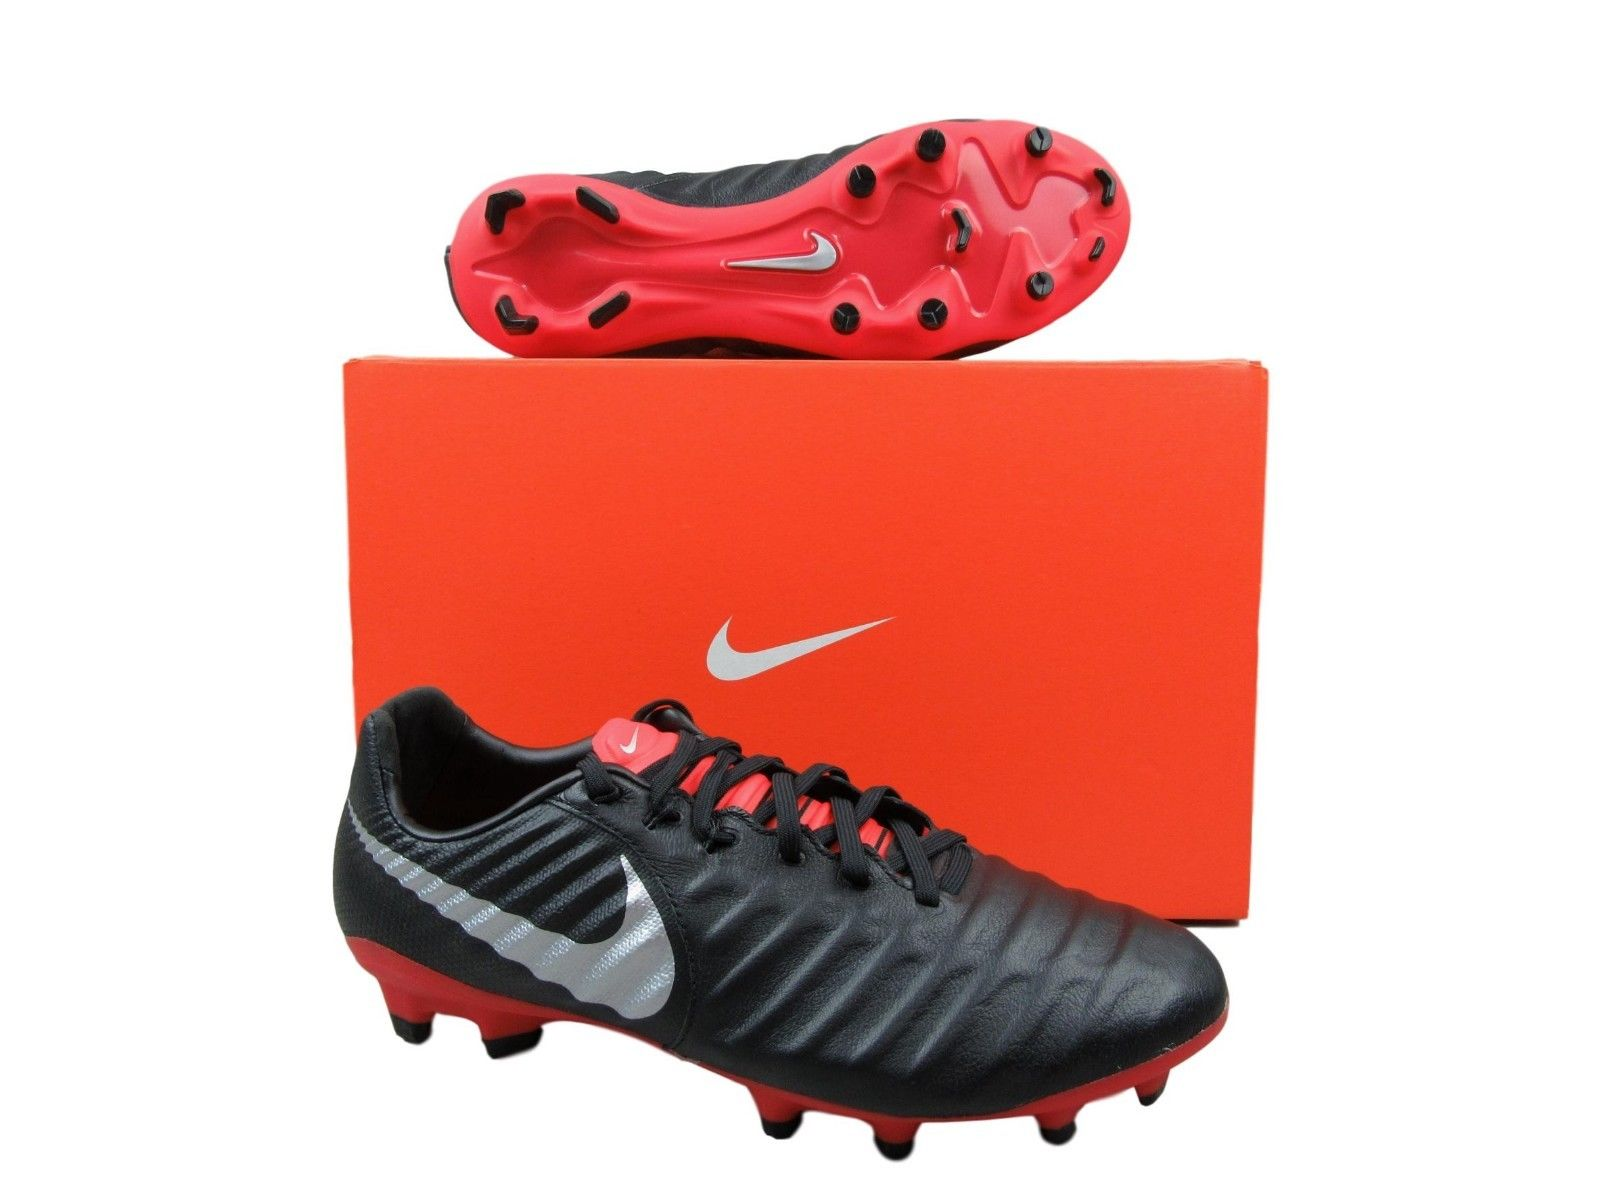 0b7d2a826 Nike Tiempo Legend 7 Pro FG Soccer Cleats Black Red Mens AH7241 006 ...